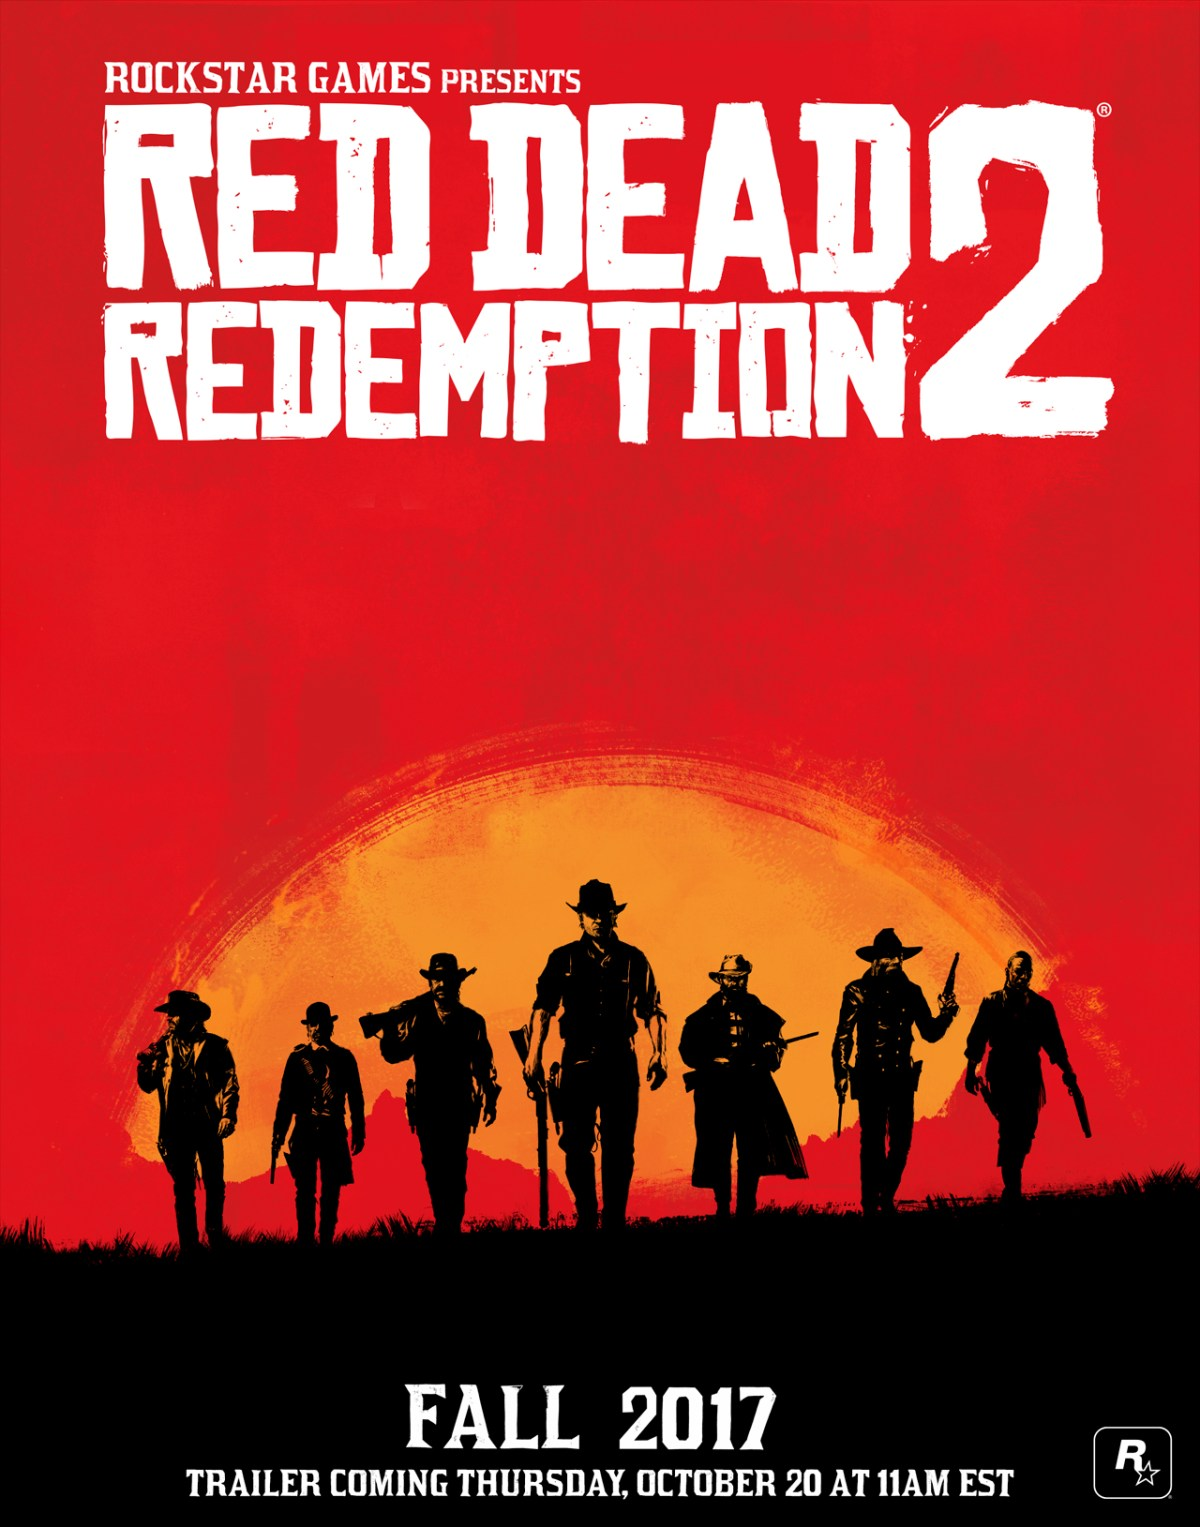 red-dead-redemption-image